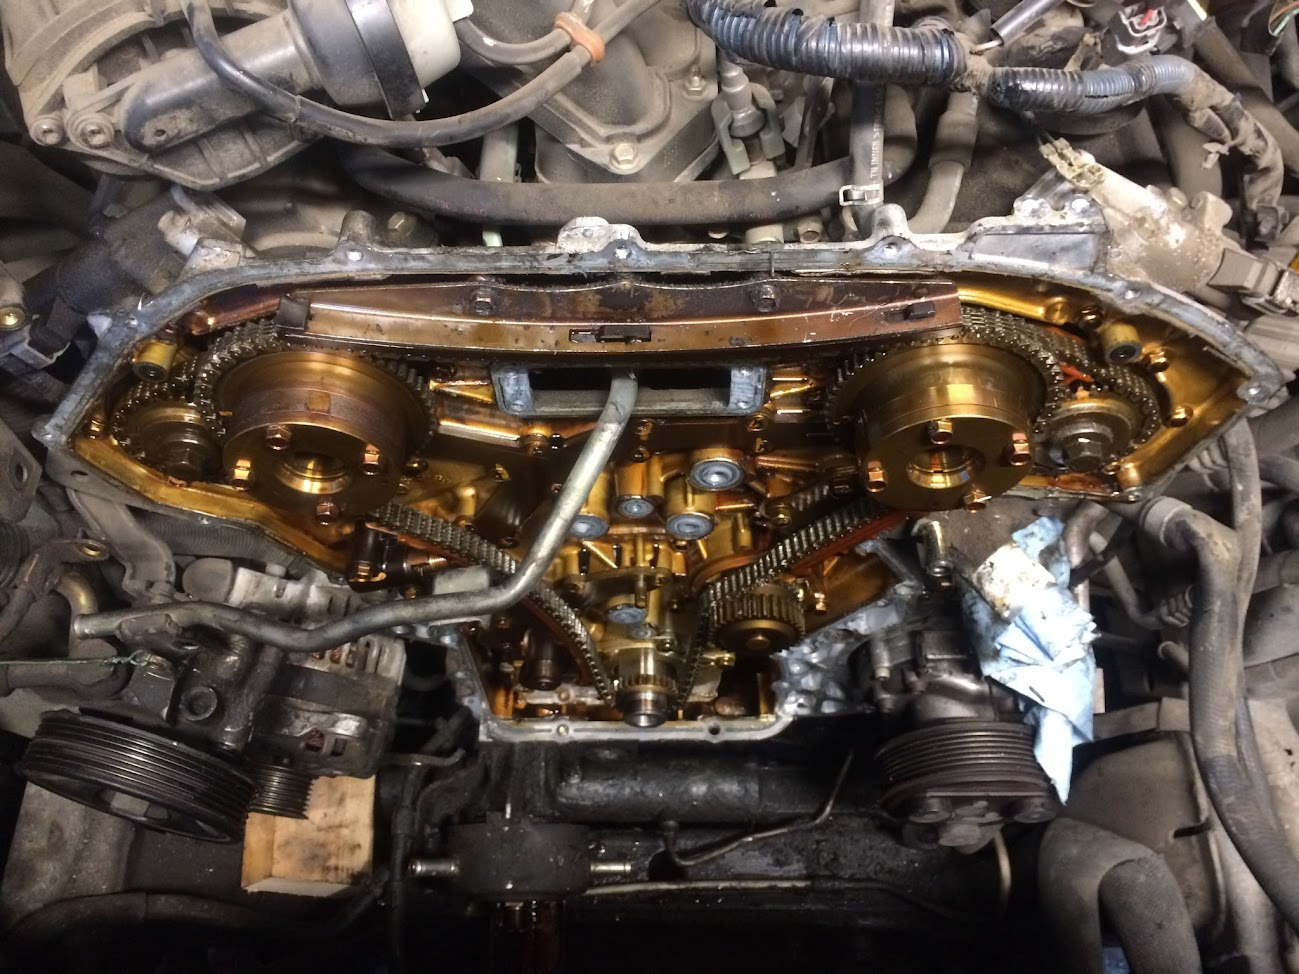 Timing Chain Noise Guides And Replacement Second Generation 06 15 2005 I Went Ahead Got Quotes For Equipment Report This Image